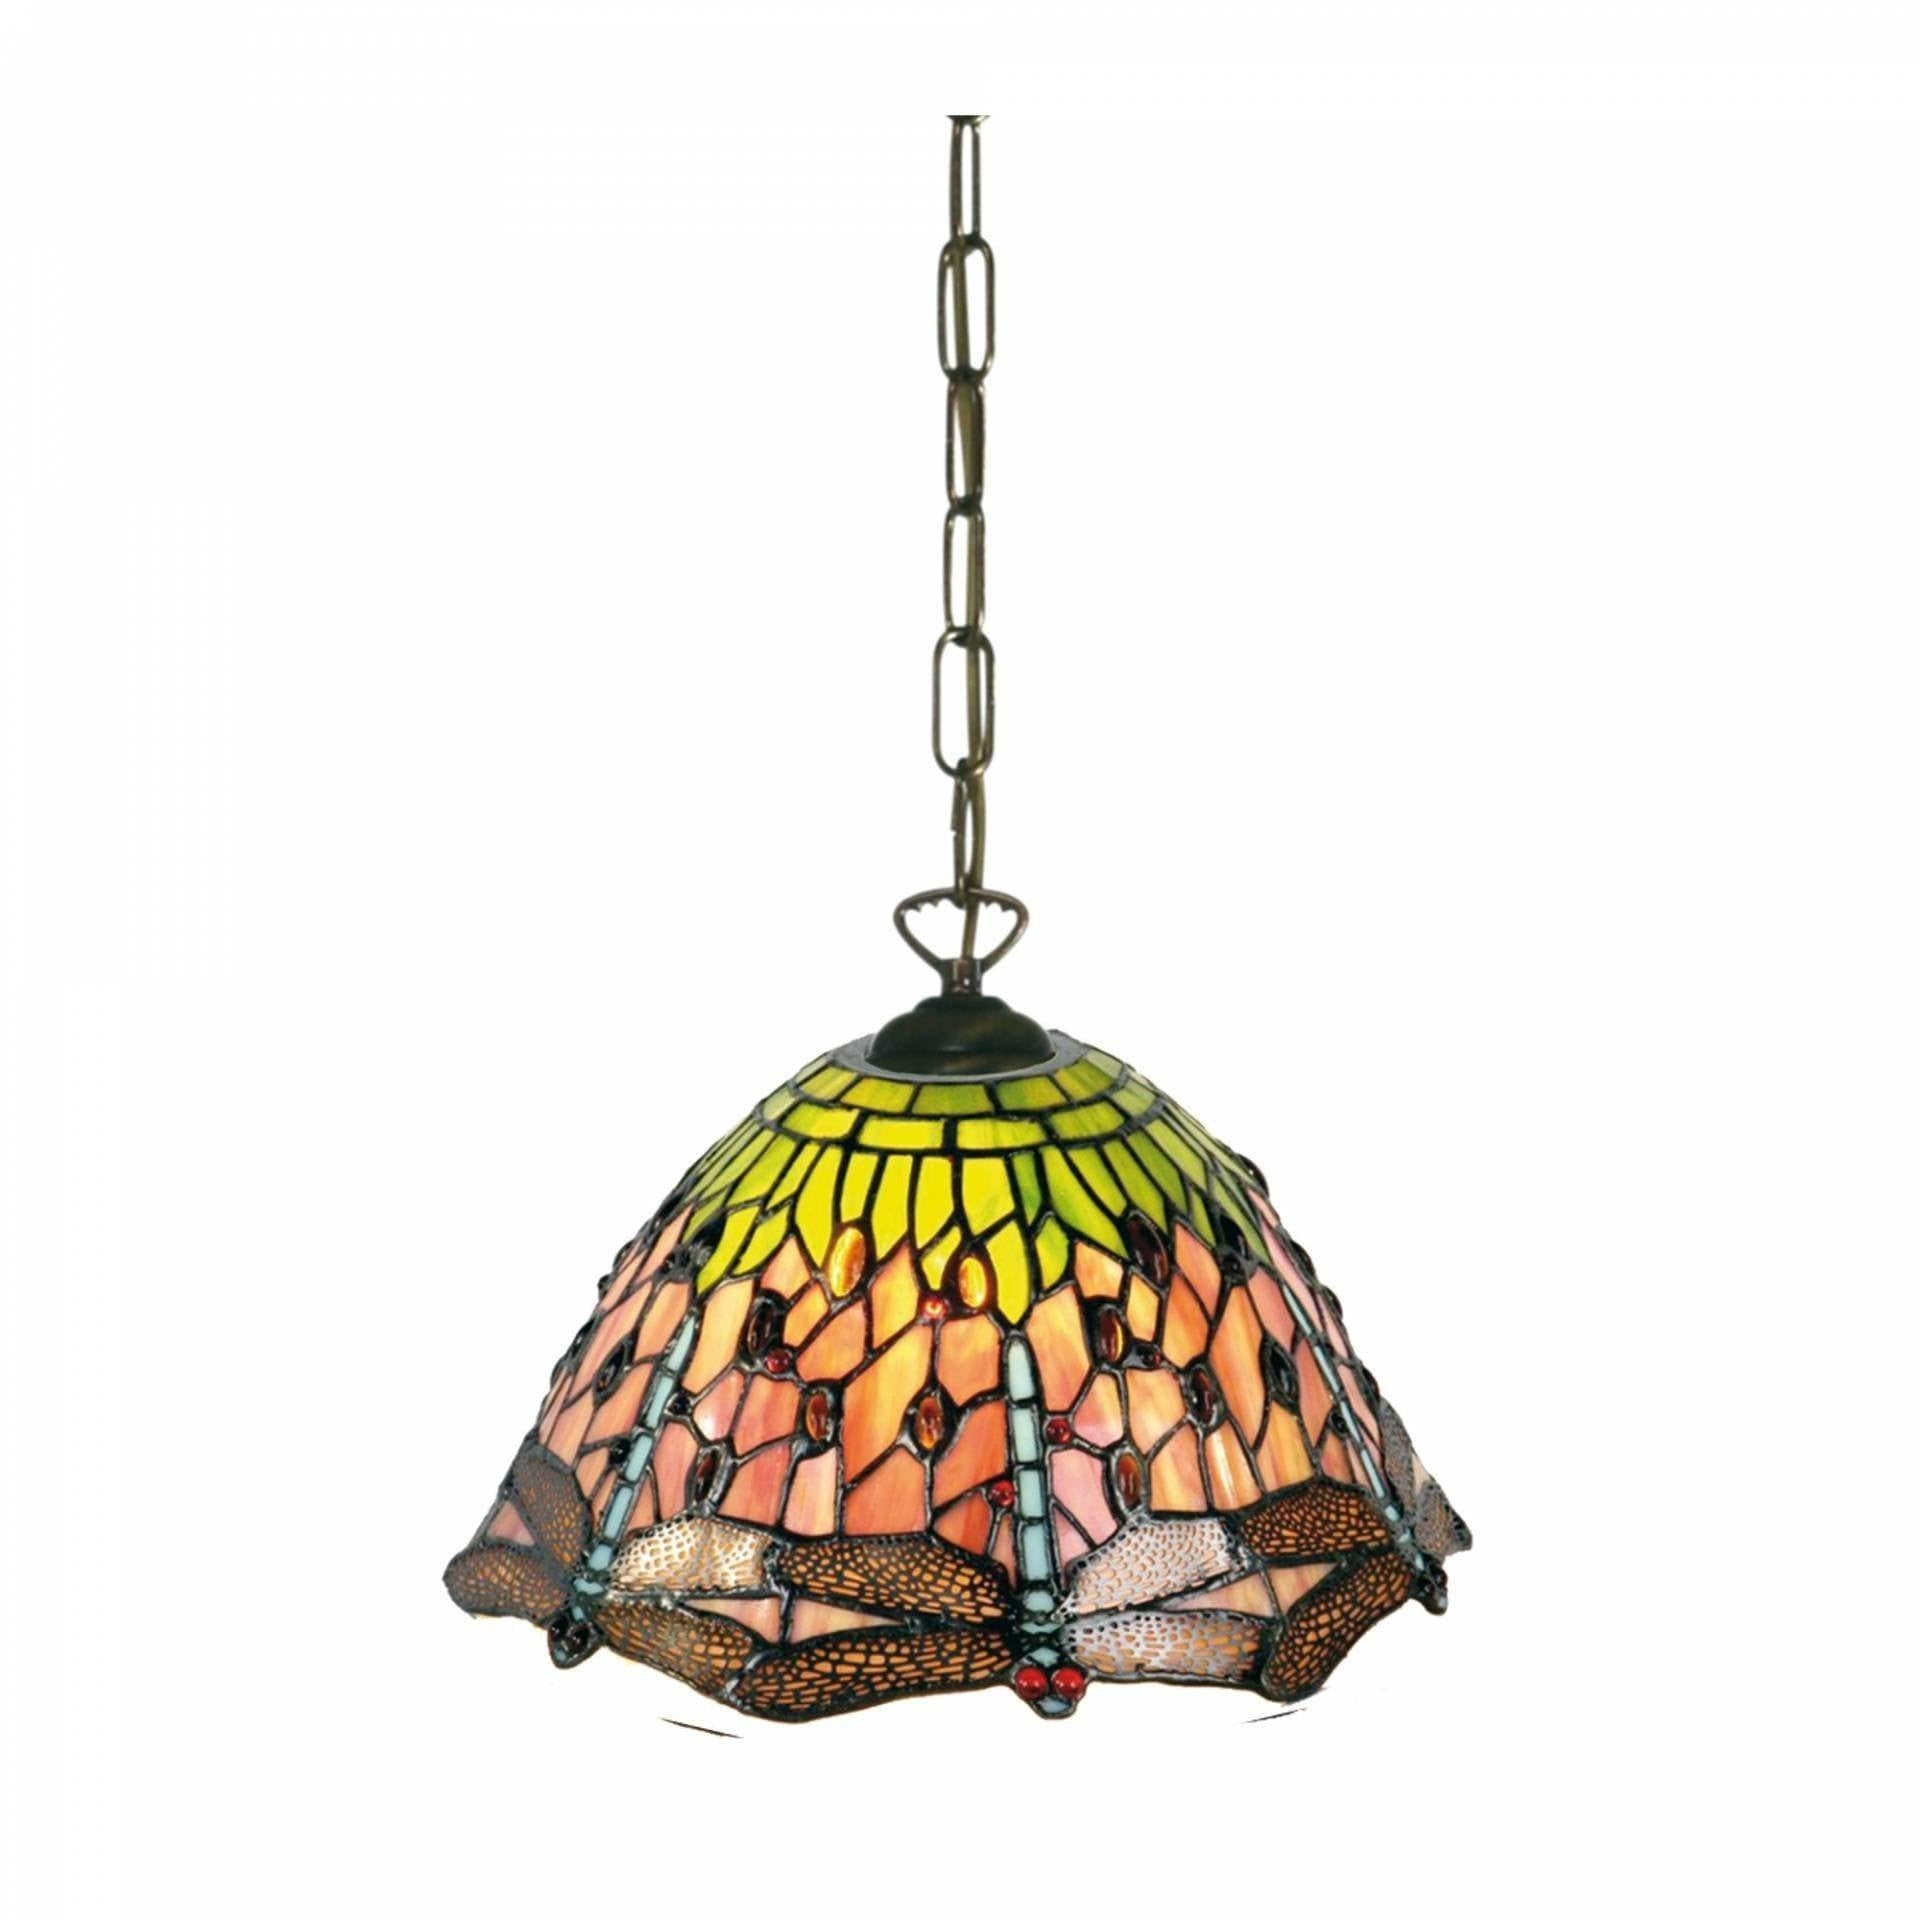 Tiffany Ceiling Pendant Lights - Flame Dragonfly Small Tiffany Ceiling Pendant Light,Single Bulb Fitting